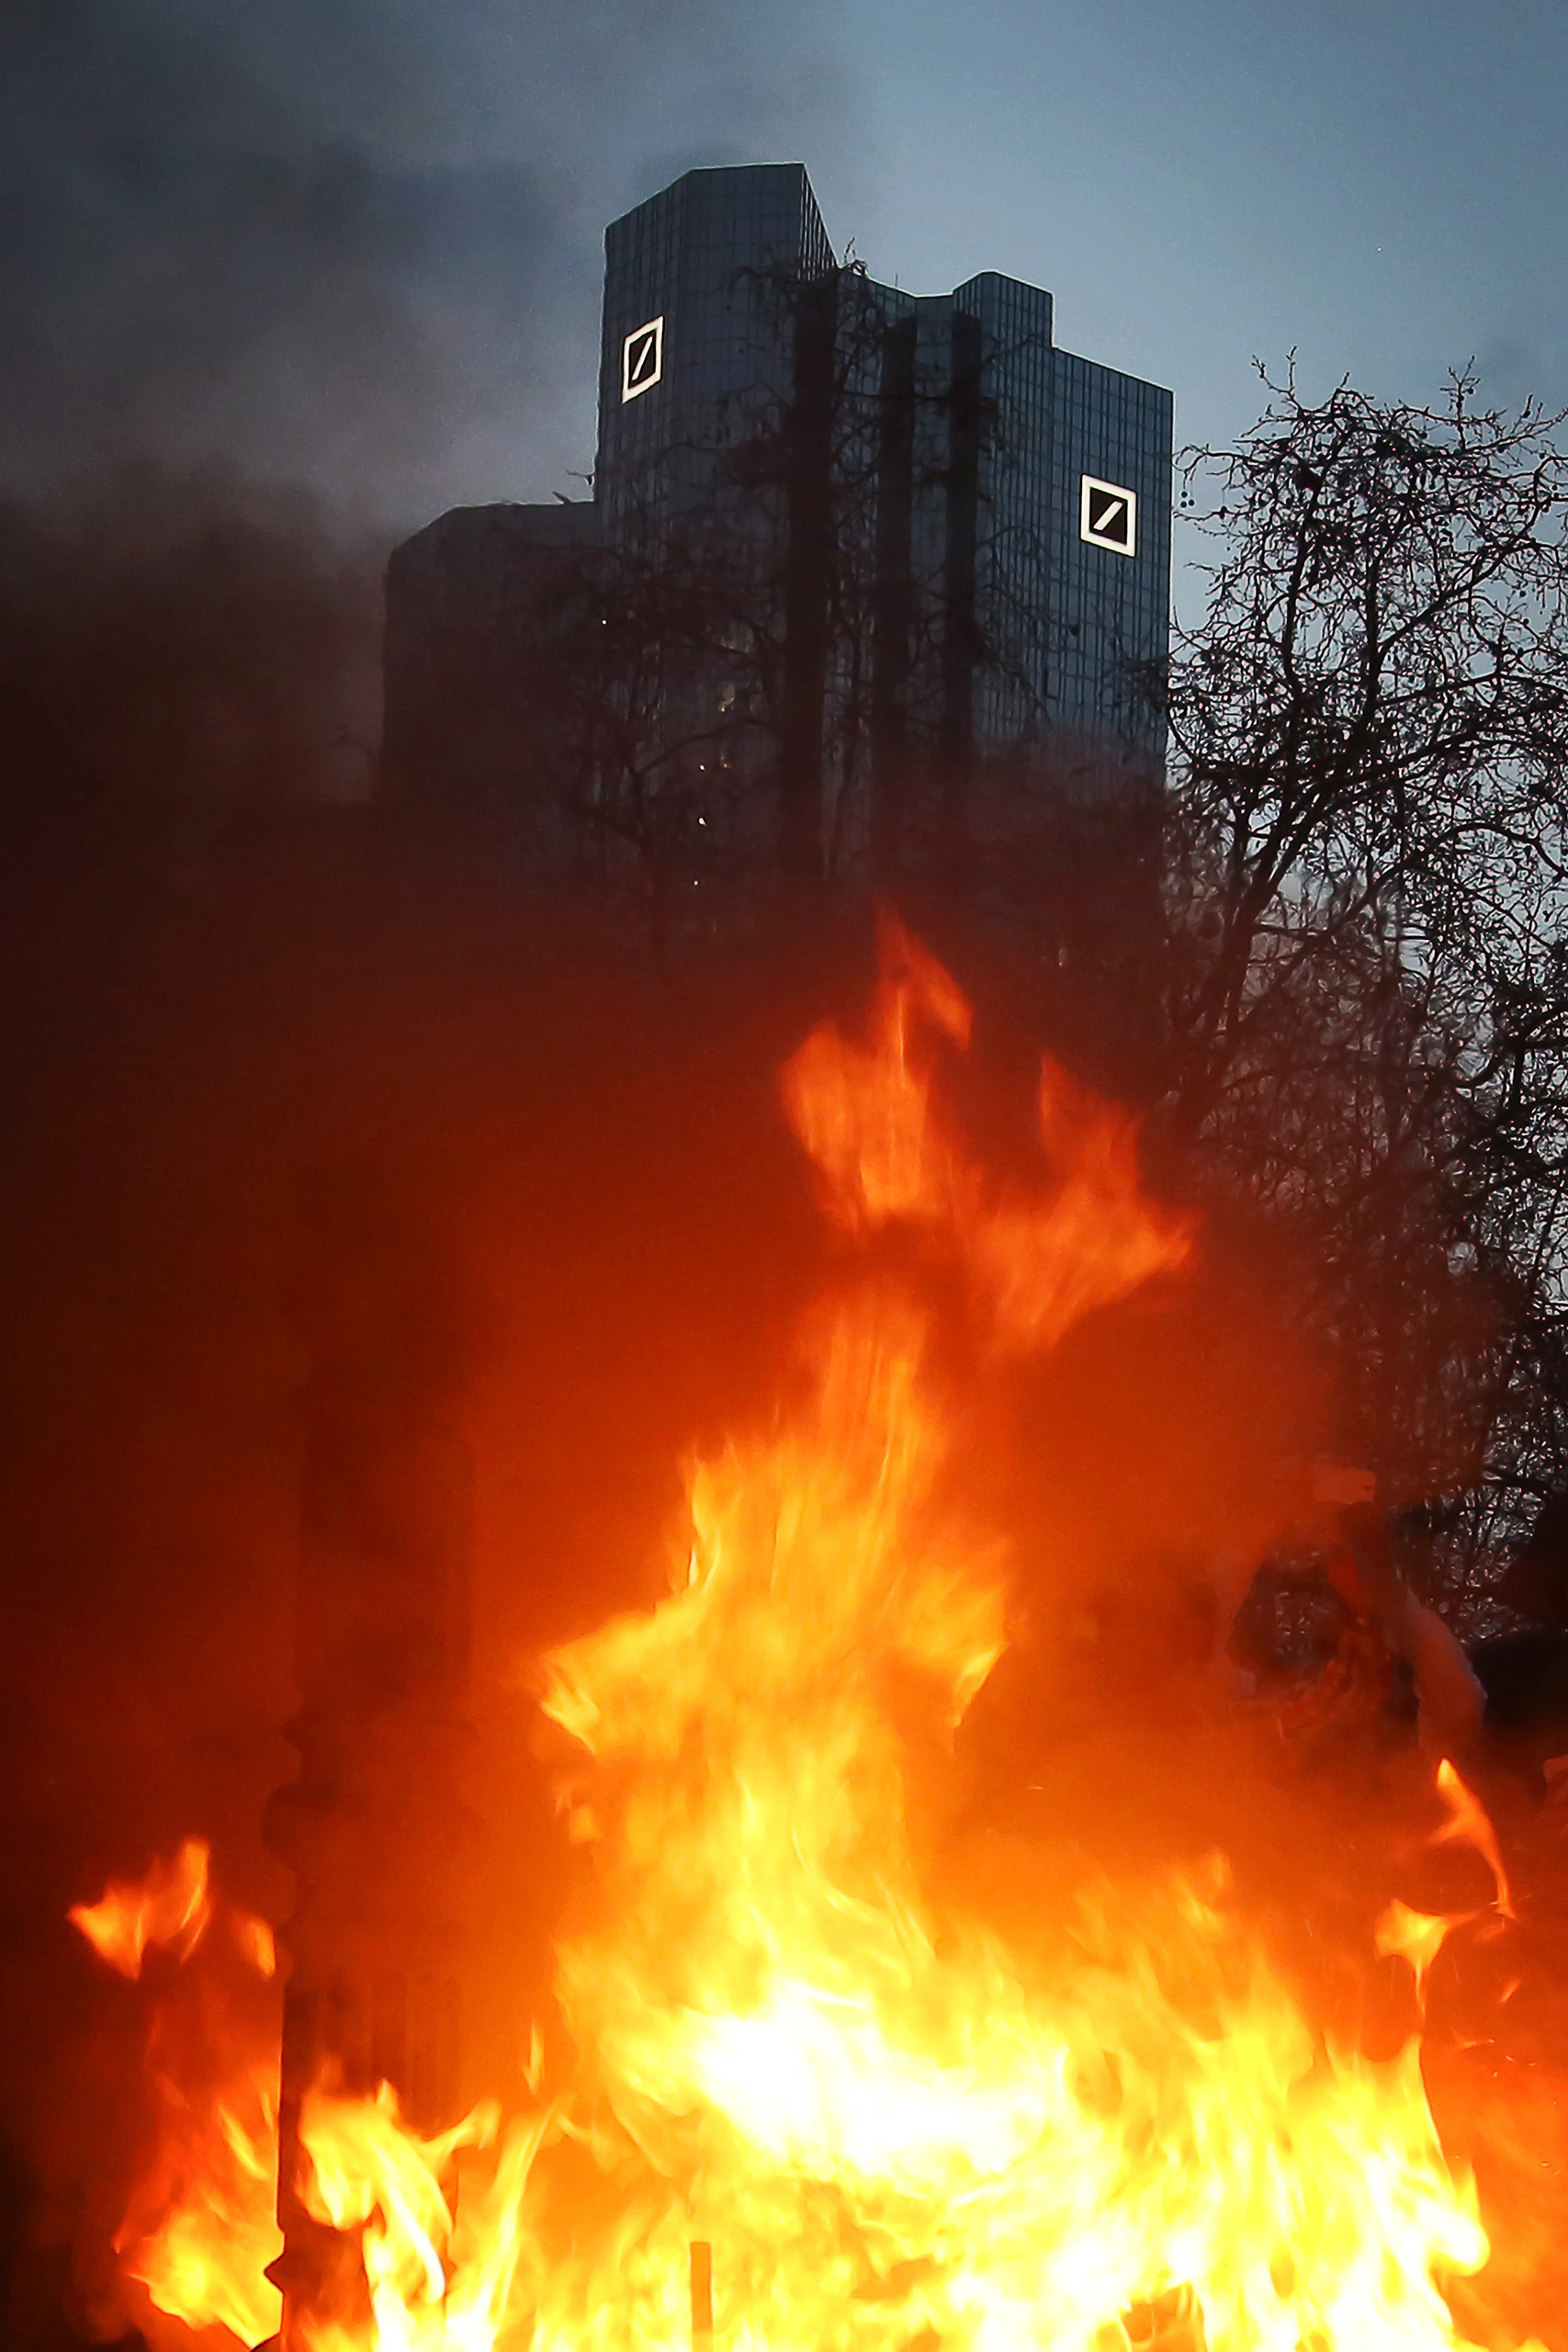 Protesters set fire to a pile of fake bills in front of the towers of the Deutsche Bank, while gathering for the closing rally on the Opernplatz (Opera Square) in Frankfurt, Germany, 18 March 2015. The new headquarters of the European Central Bank (ECB) in Frankfurt opened today amid protests. Photo by: Fredrik von Erichsen/picture-alliance/dpa/AP Images